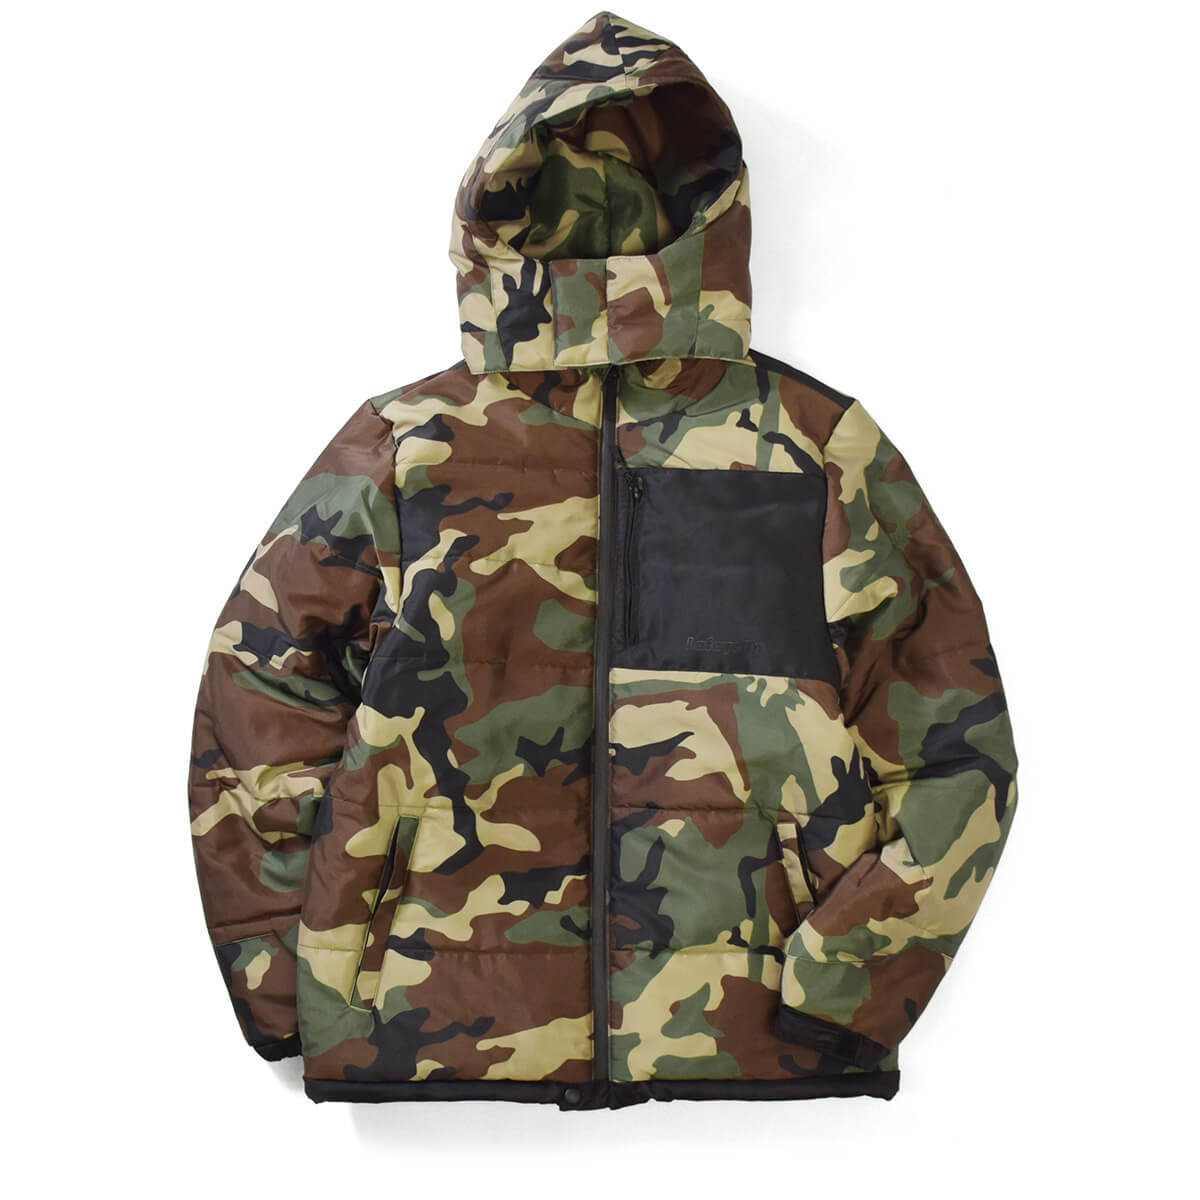 라파예트 패딩 자켓 ALL CITY POLYESTER FILL JACKET CAMO Lafayette